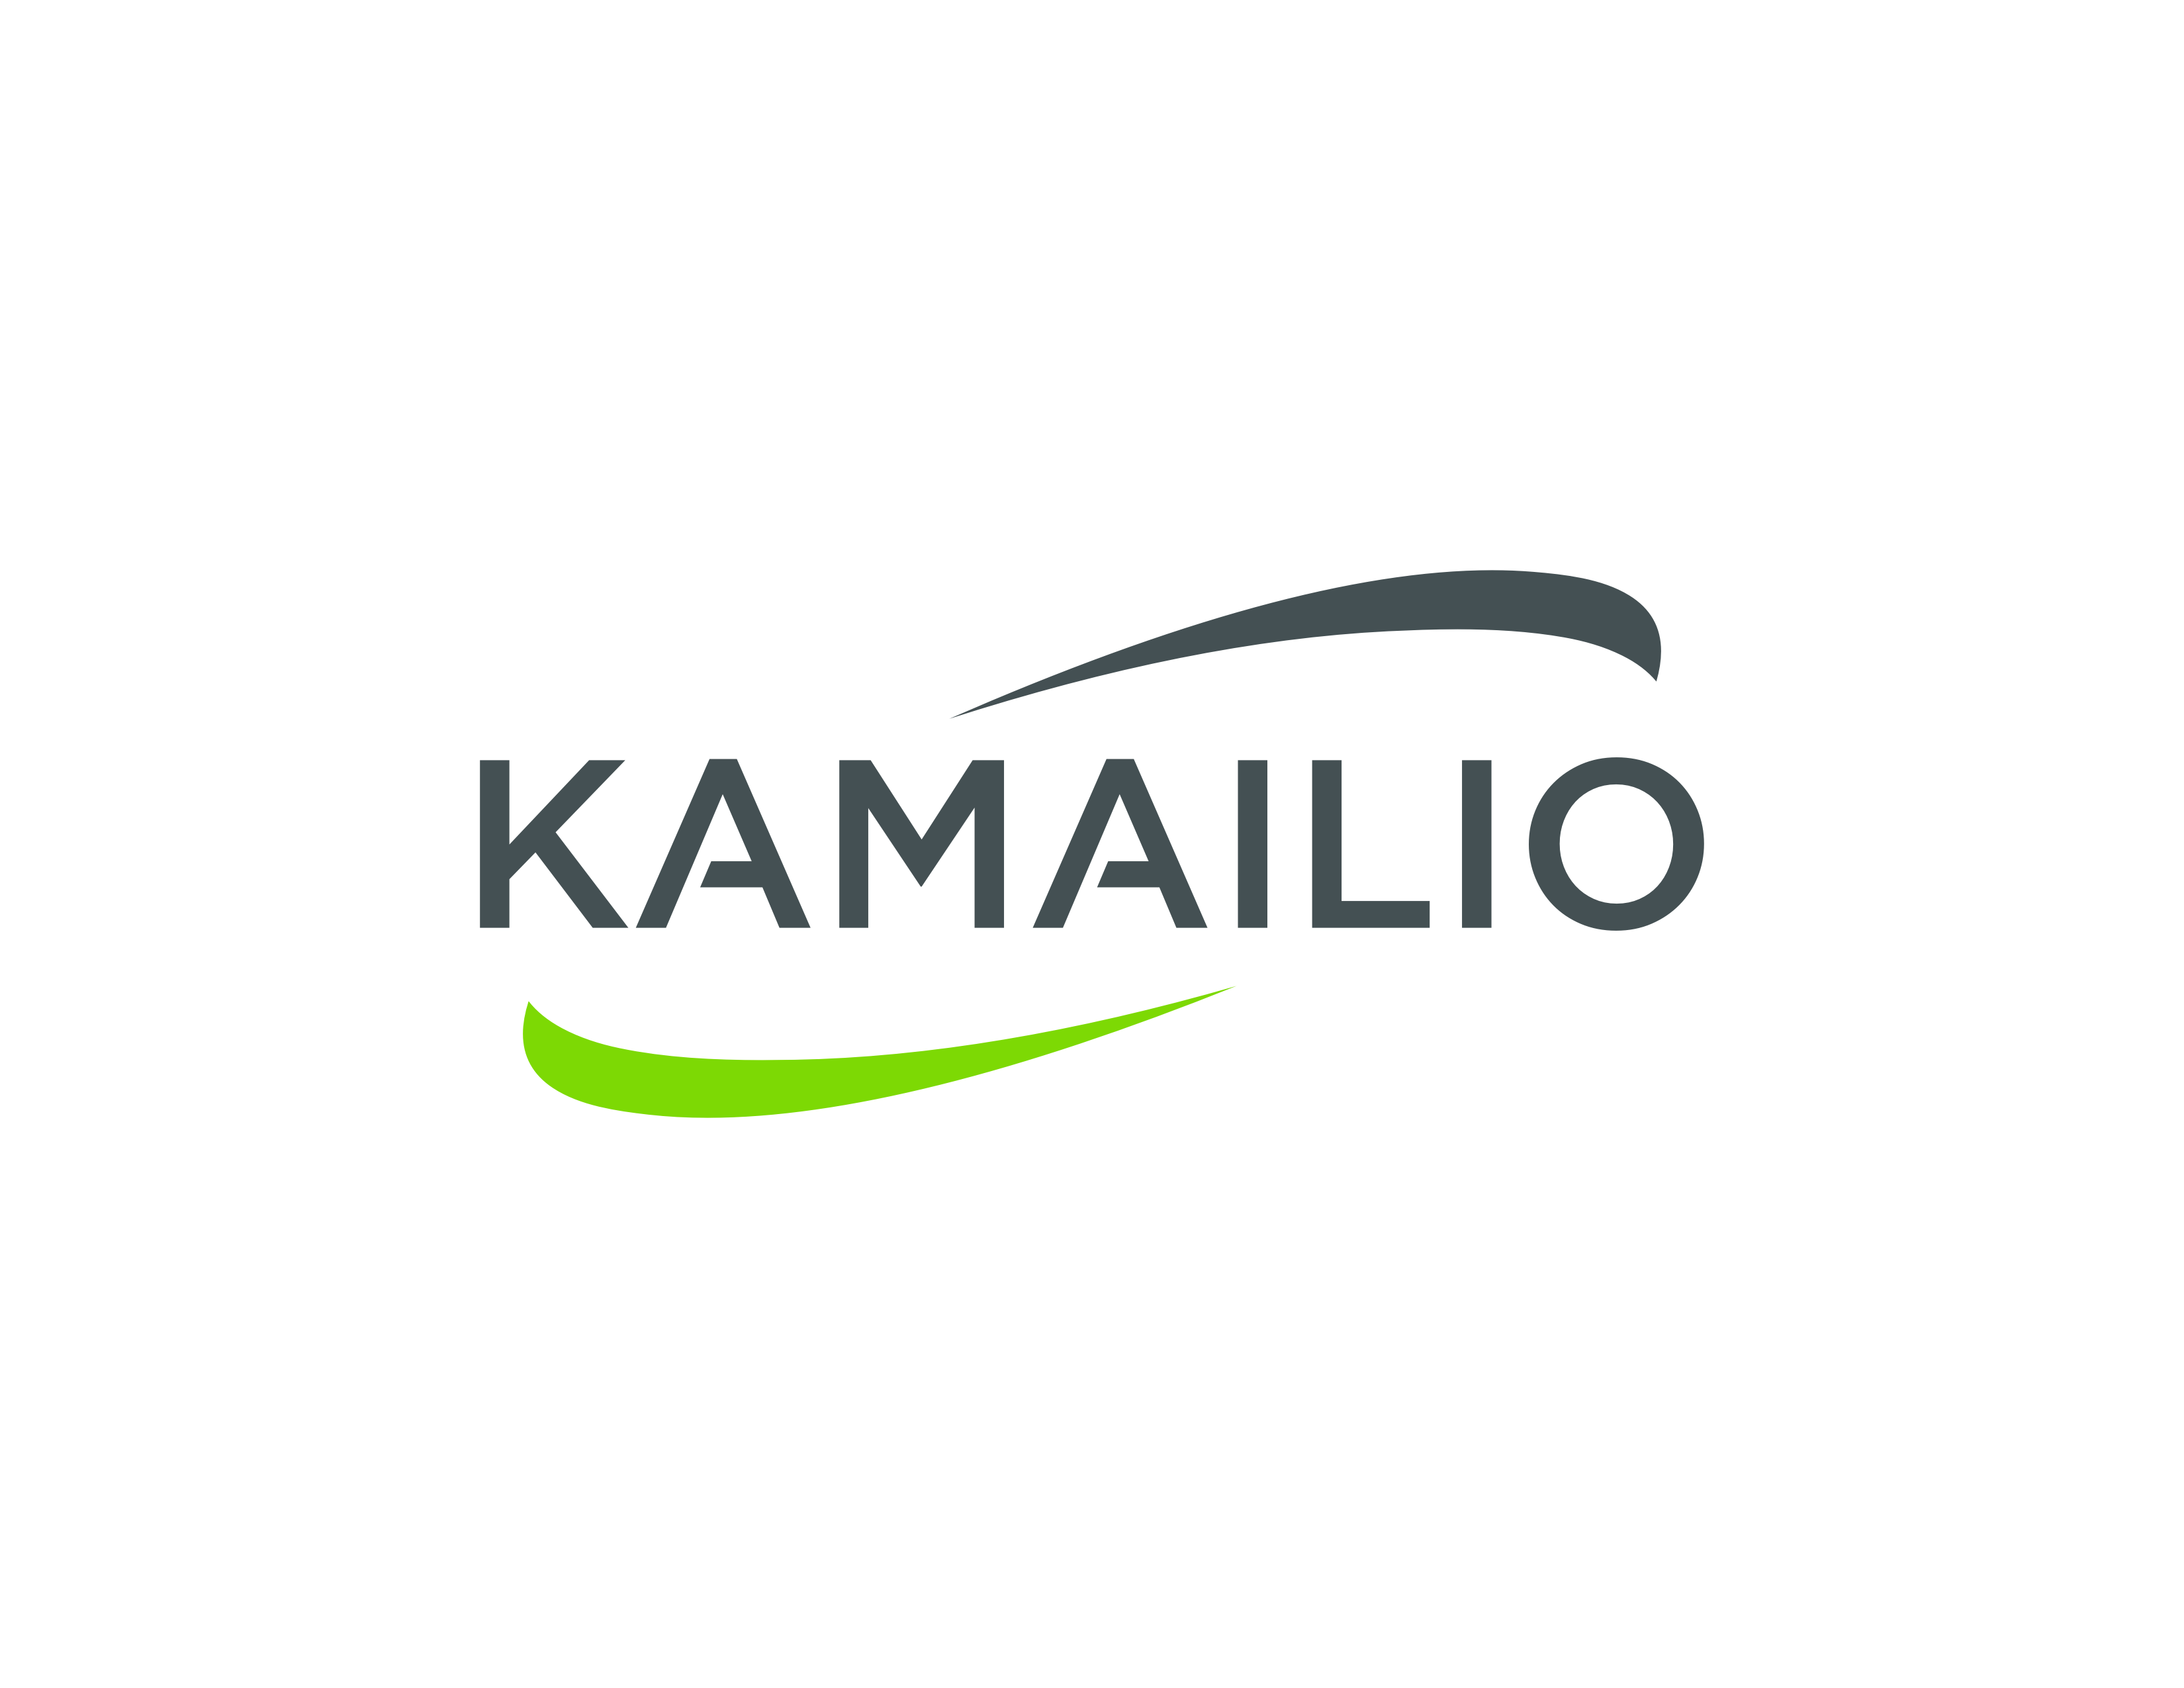 Kamailio Support and Consulting